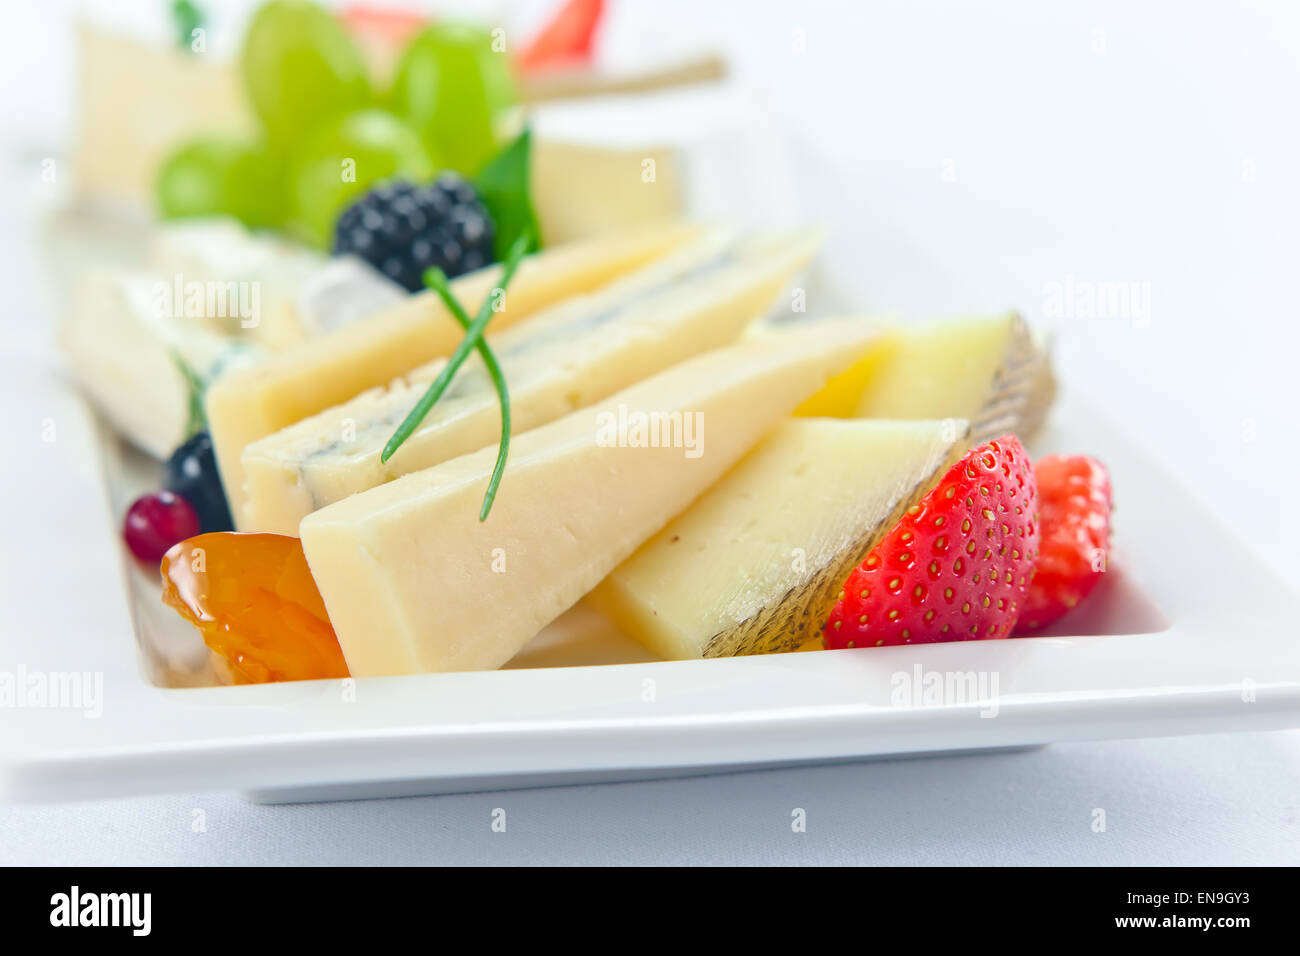 cheese with berries on a white plate Stock Photo